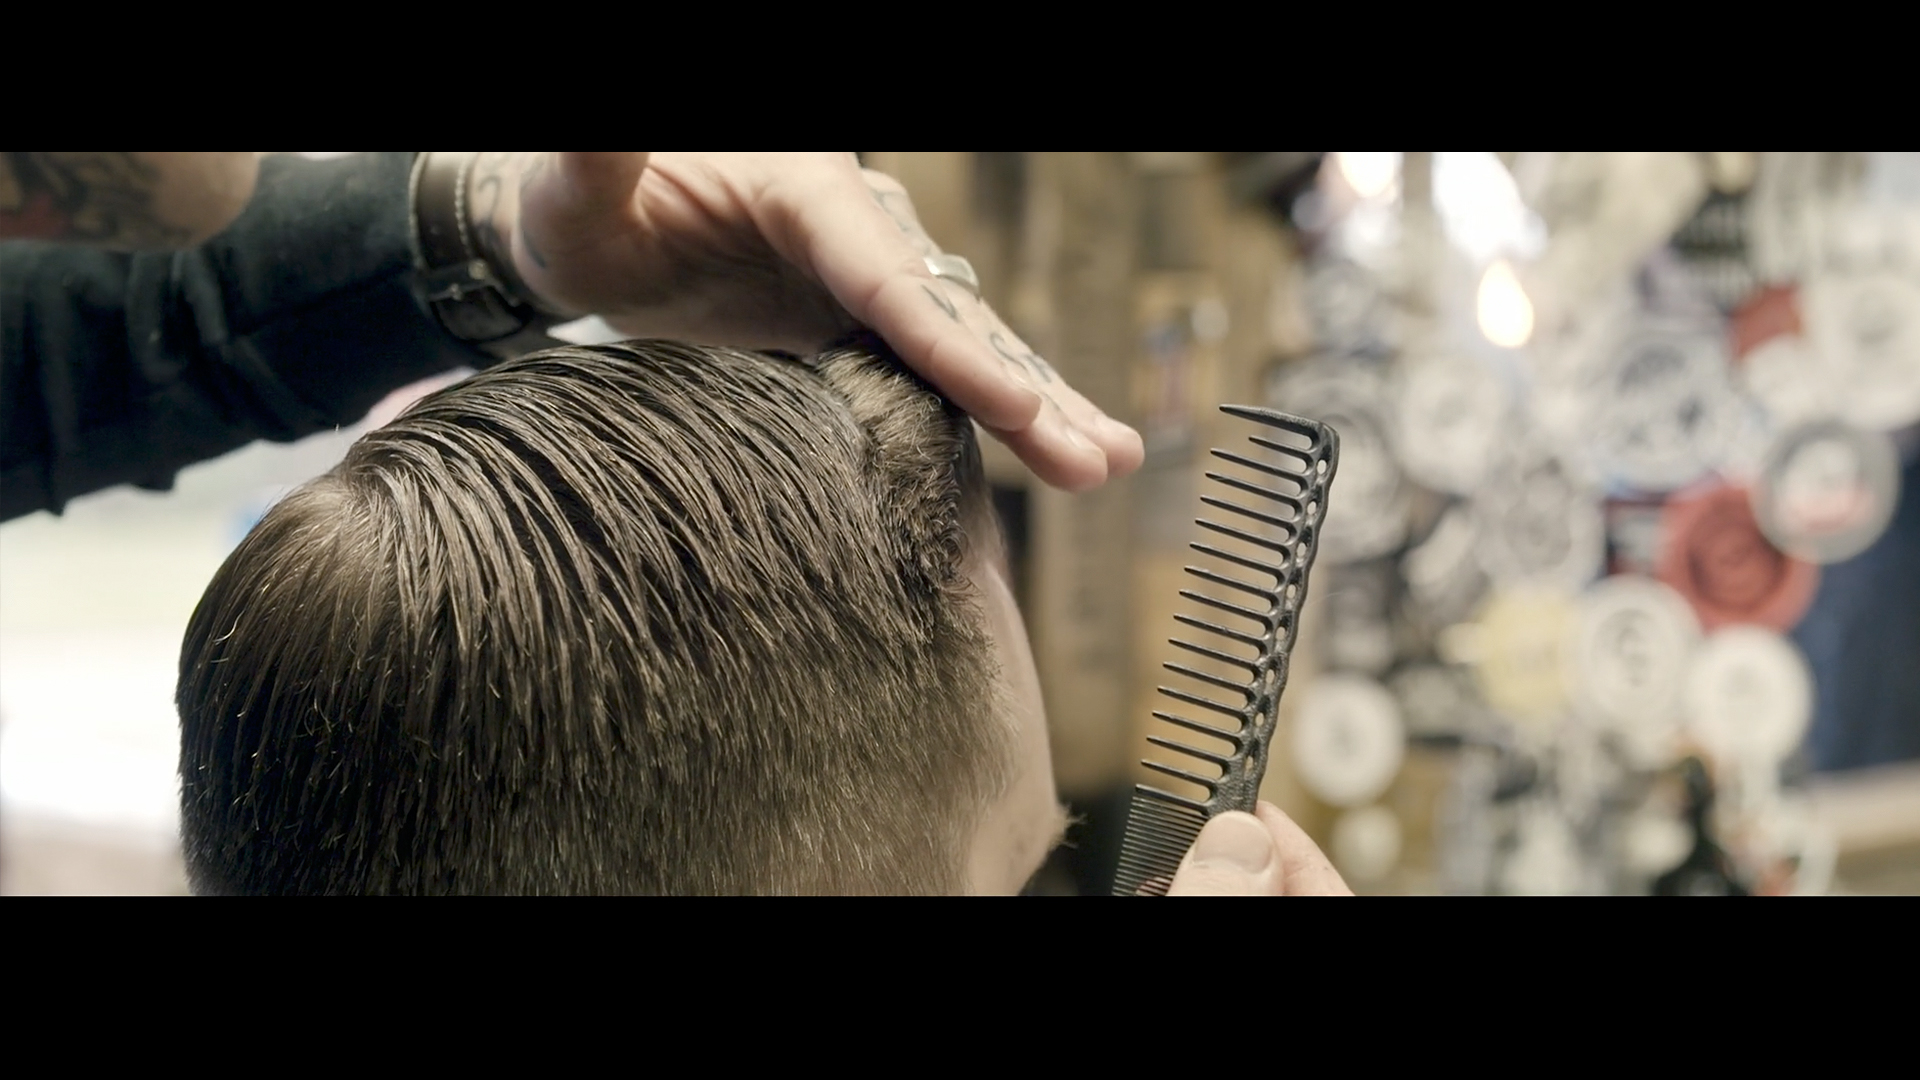 Harley Davison Iron Sportster 883 Video Production North East England Barbers Corporate Video Haircut Uppercut Pomade